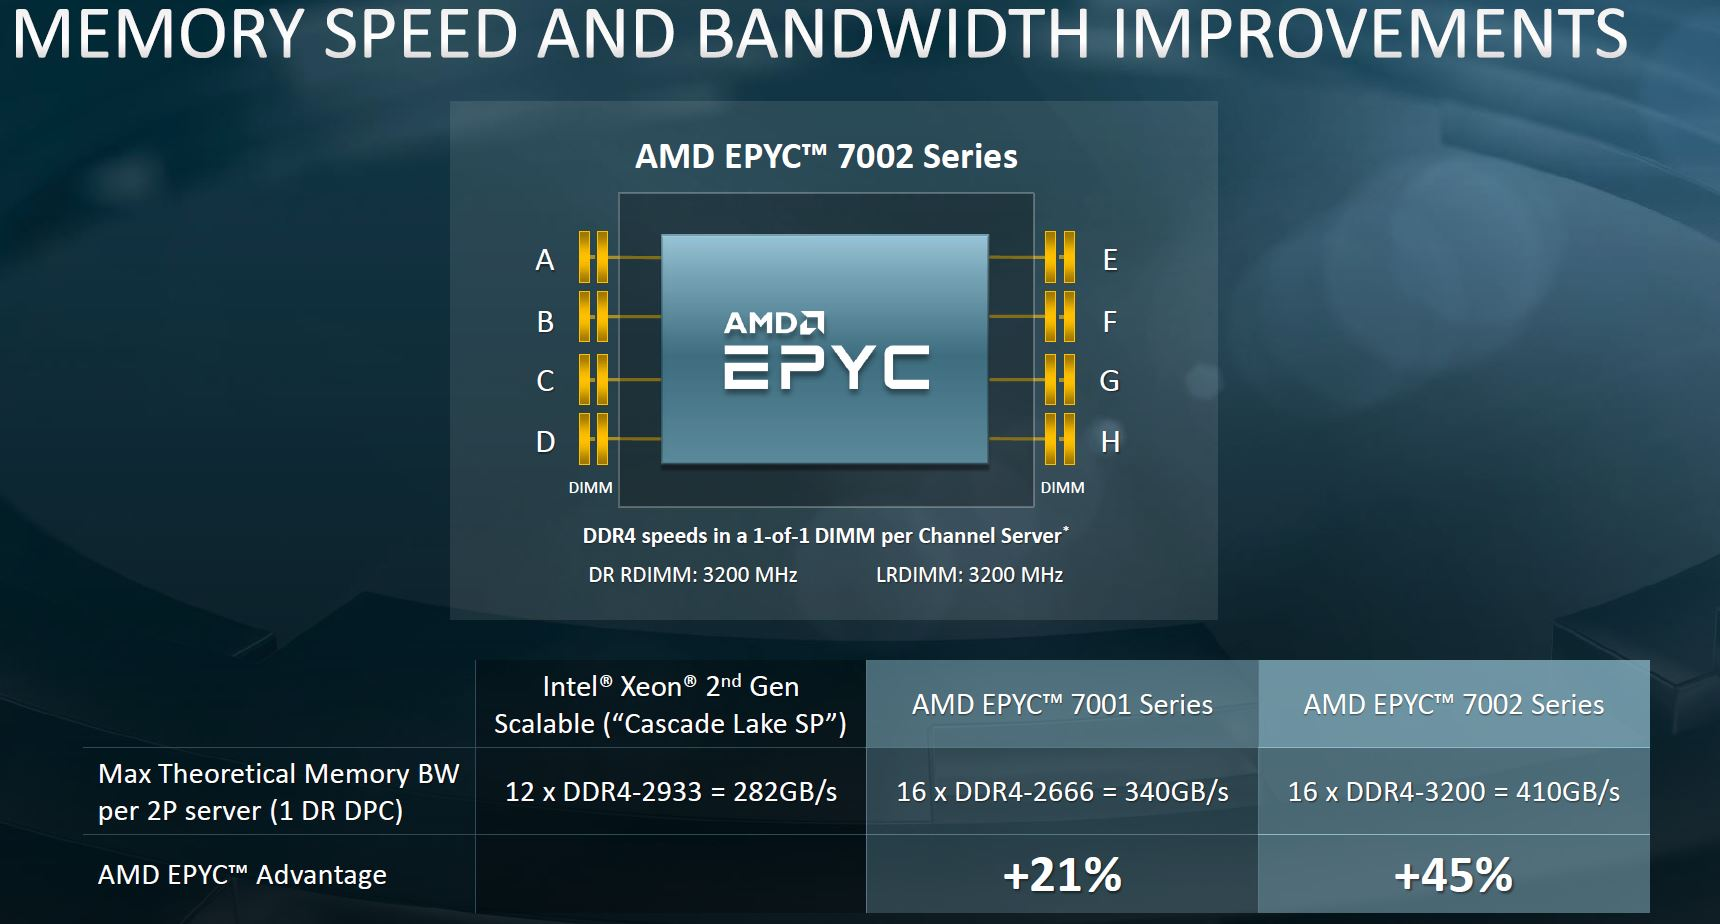 AMD EPYC 7002 Architecture Memory Speed And Bandwidth Benefits